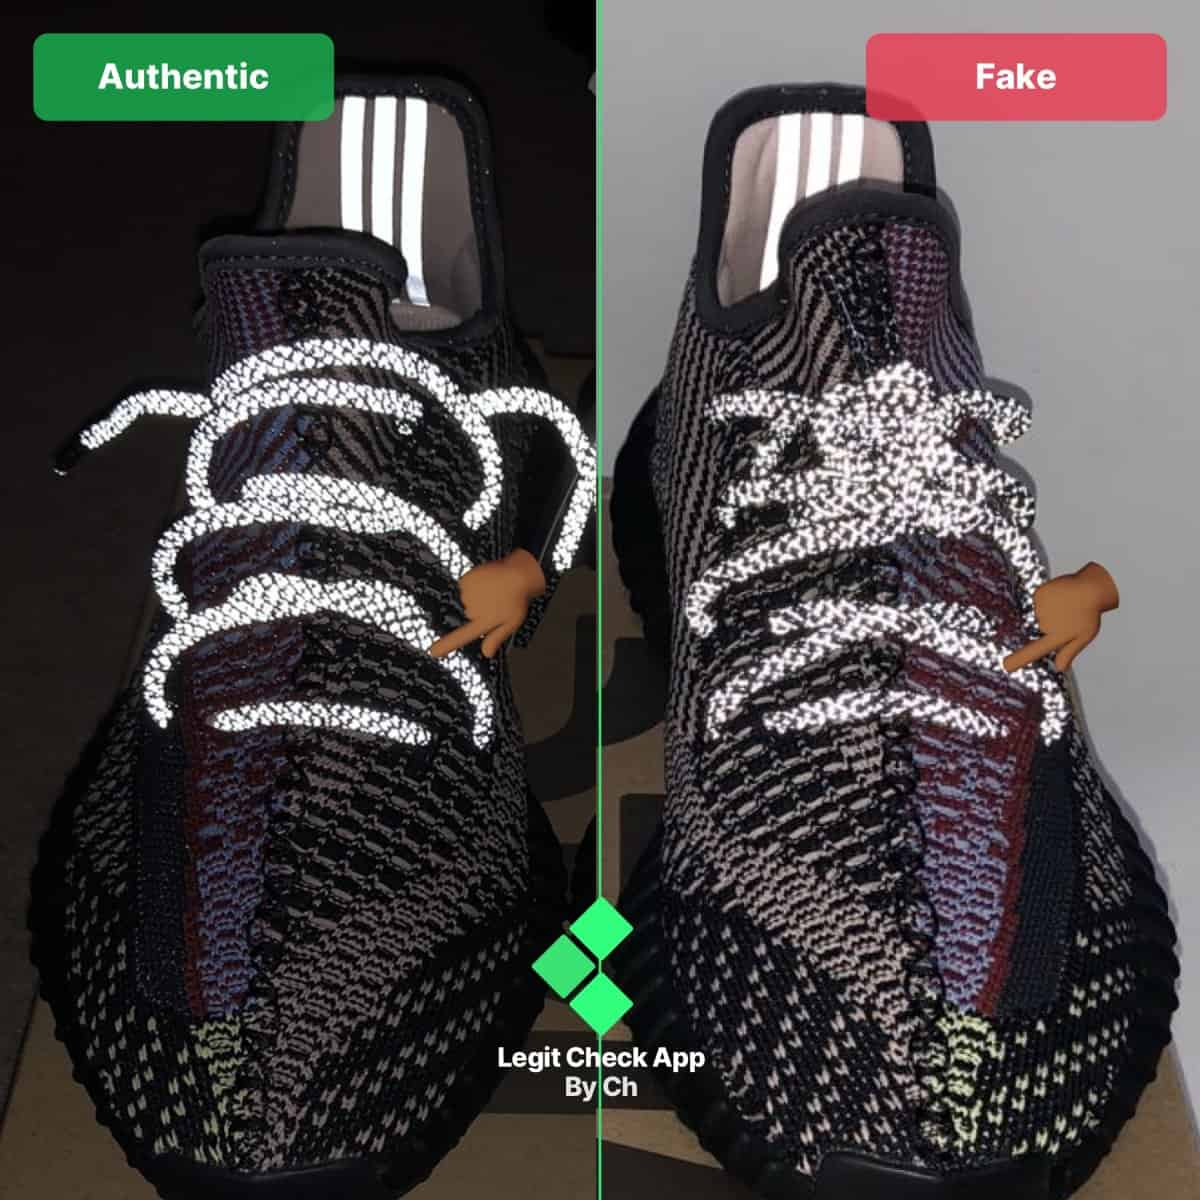 3m yeezy fake vs real